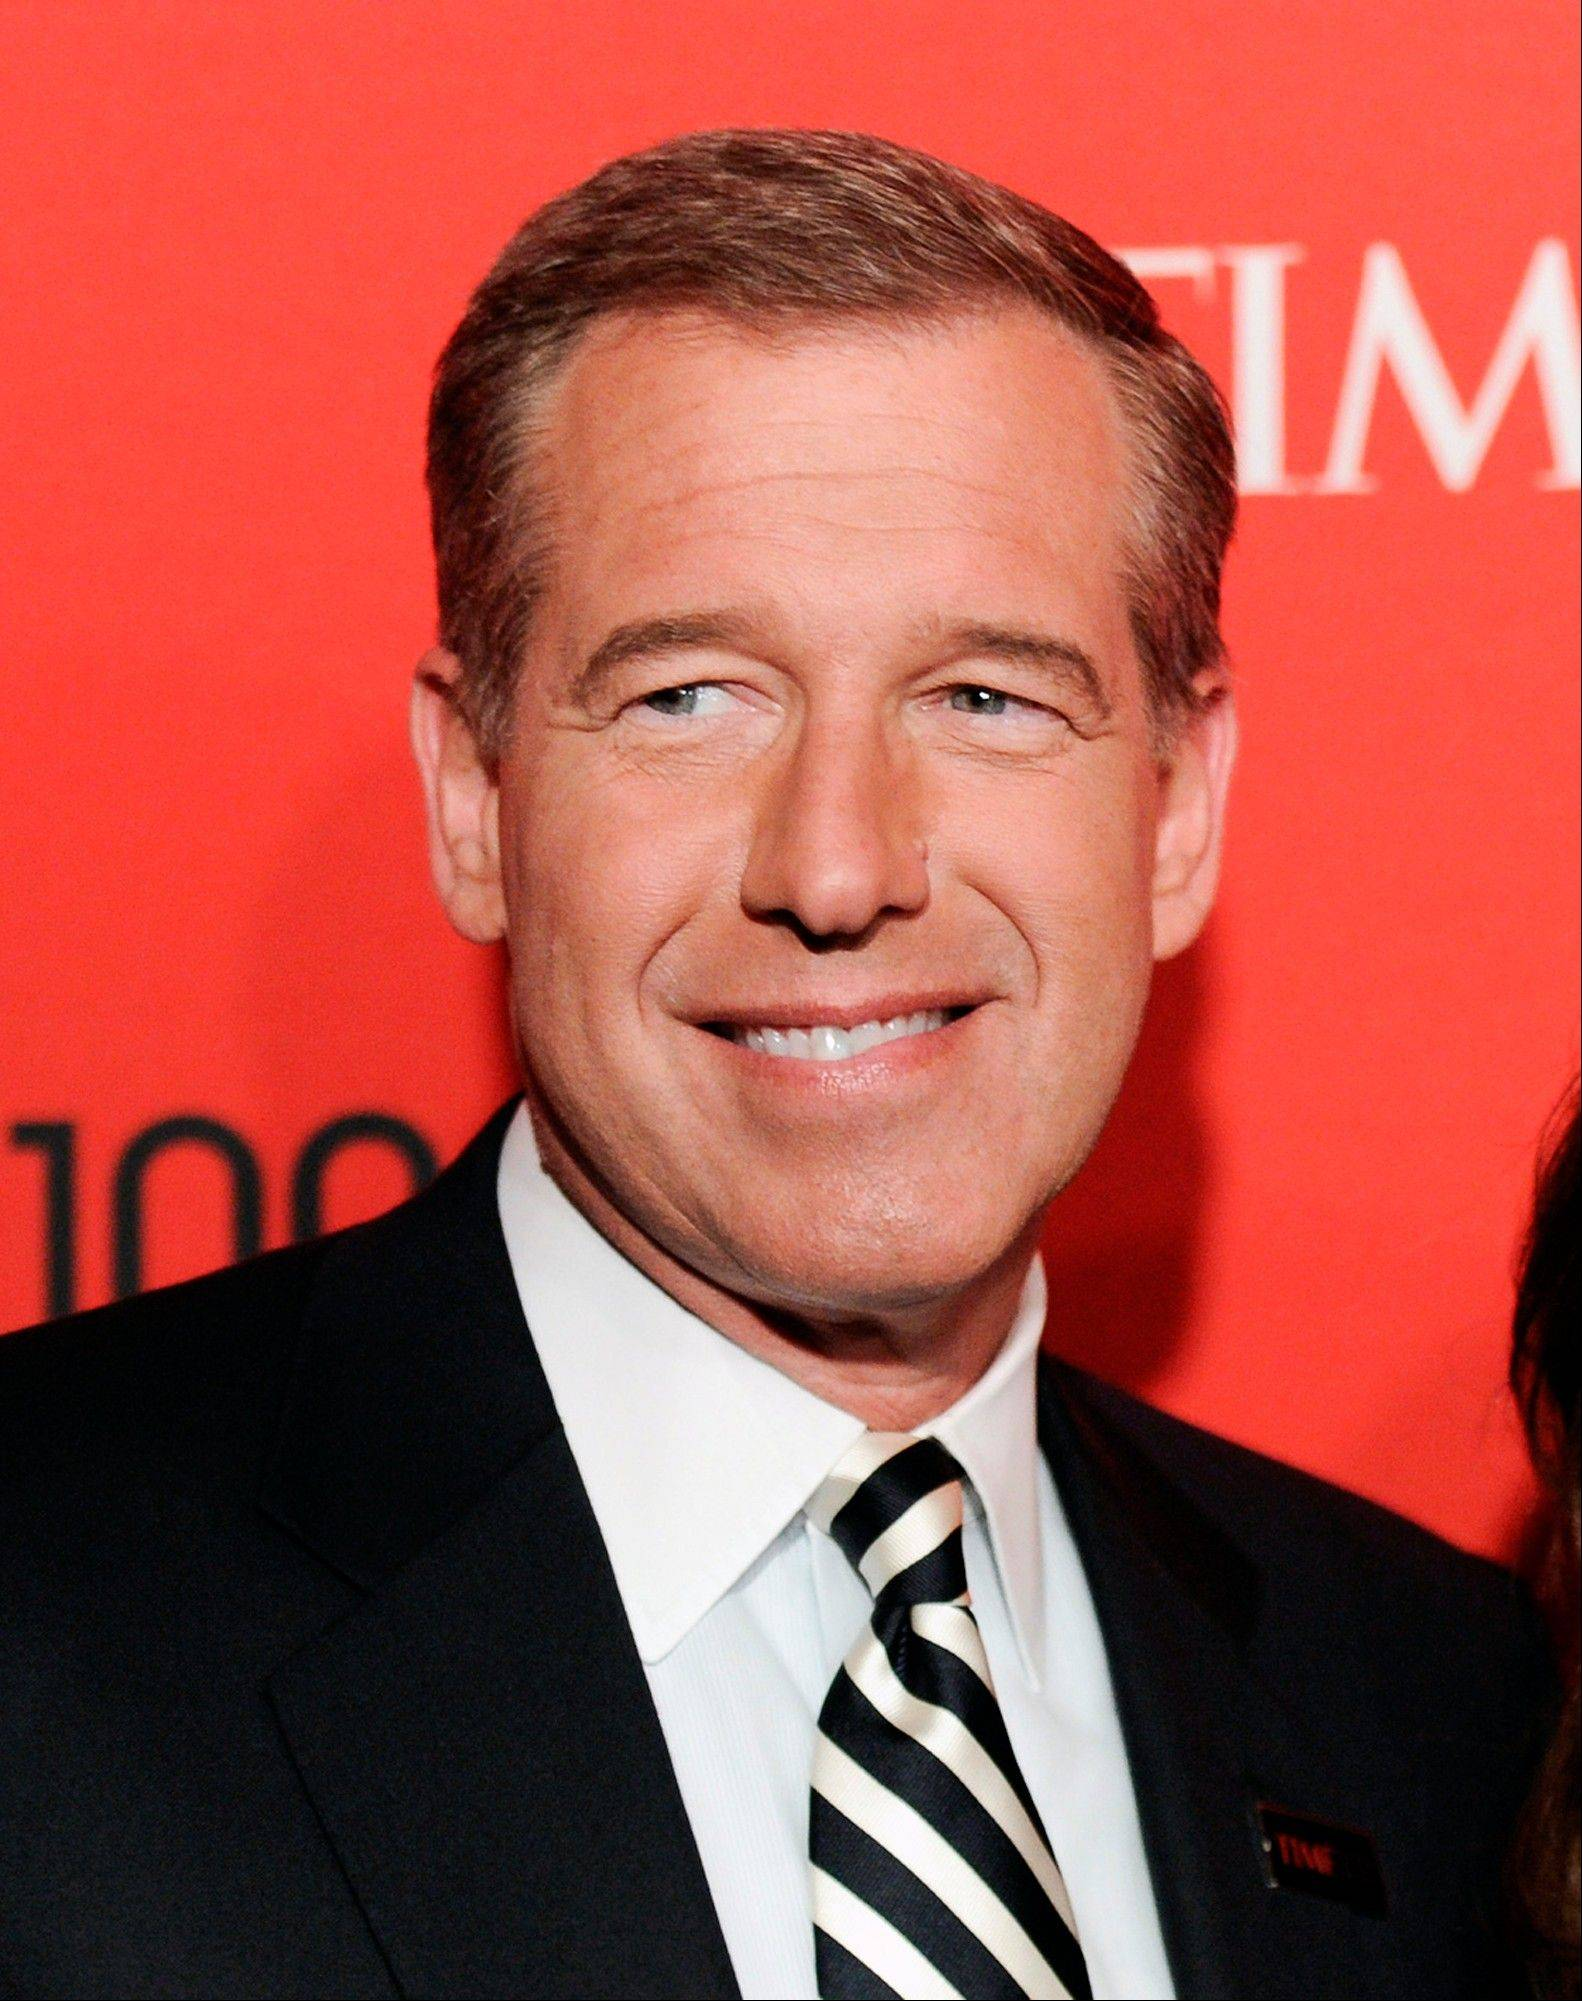 NBC News anchor Brian Williams will be off the air for a few weeks soon for surgery to replace a knee that was damaged in a high-school football game decades ago.